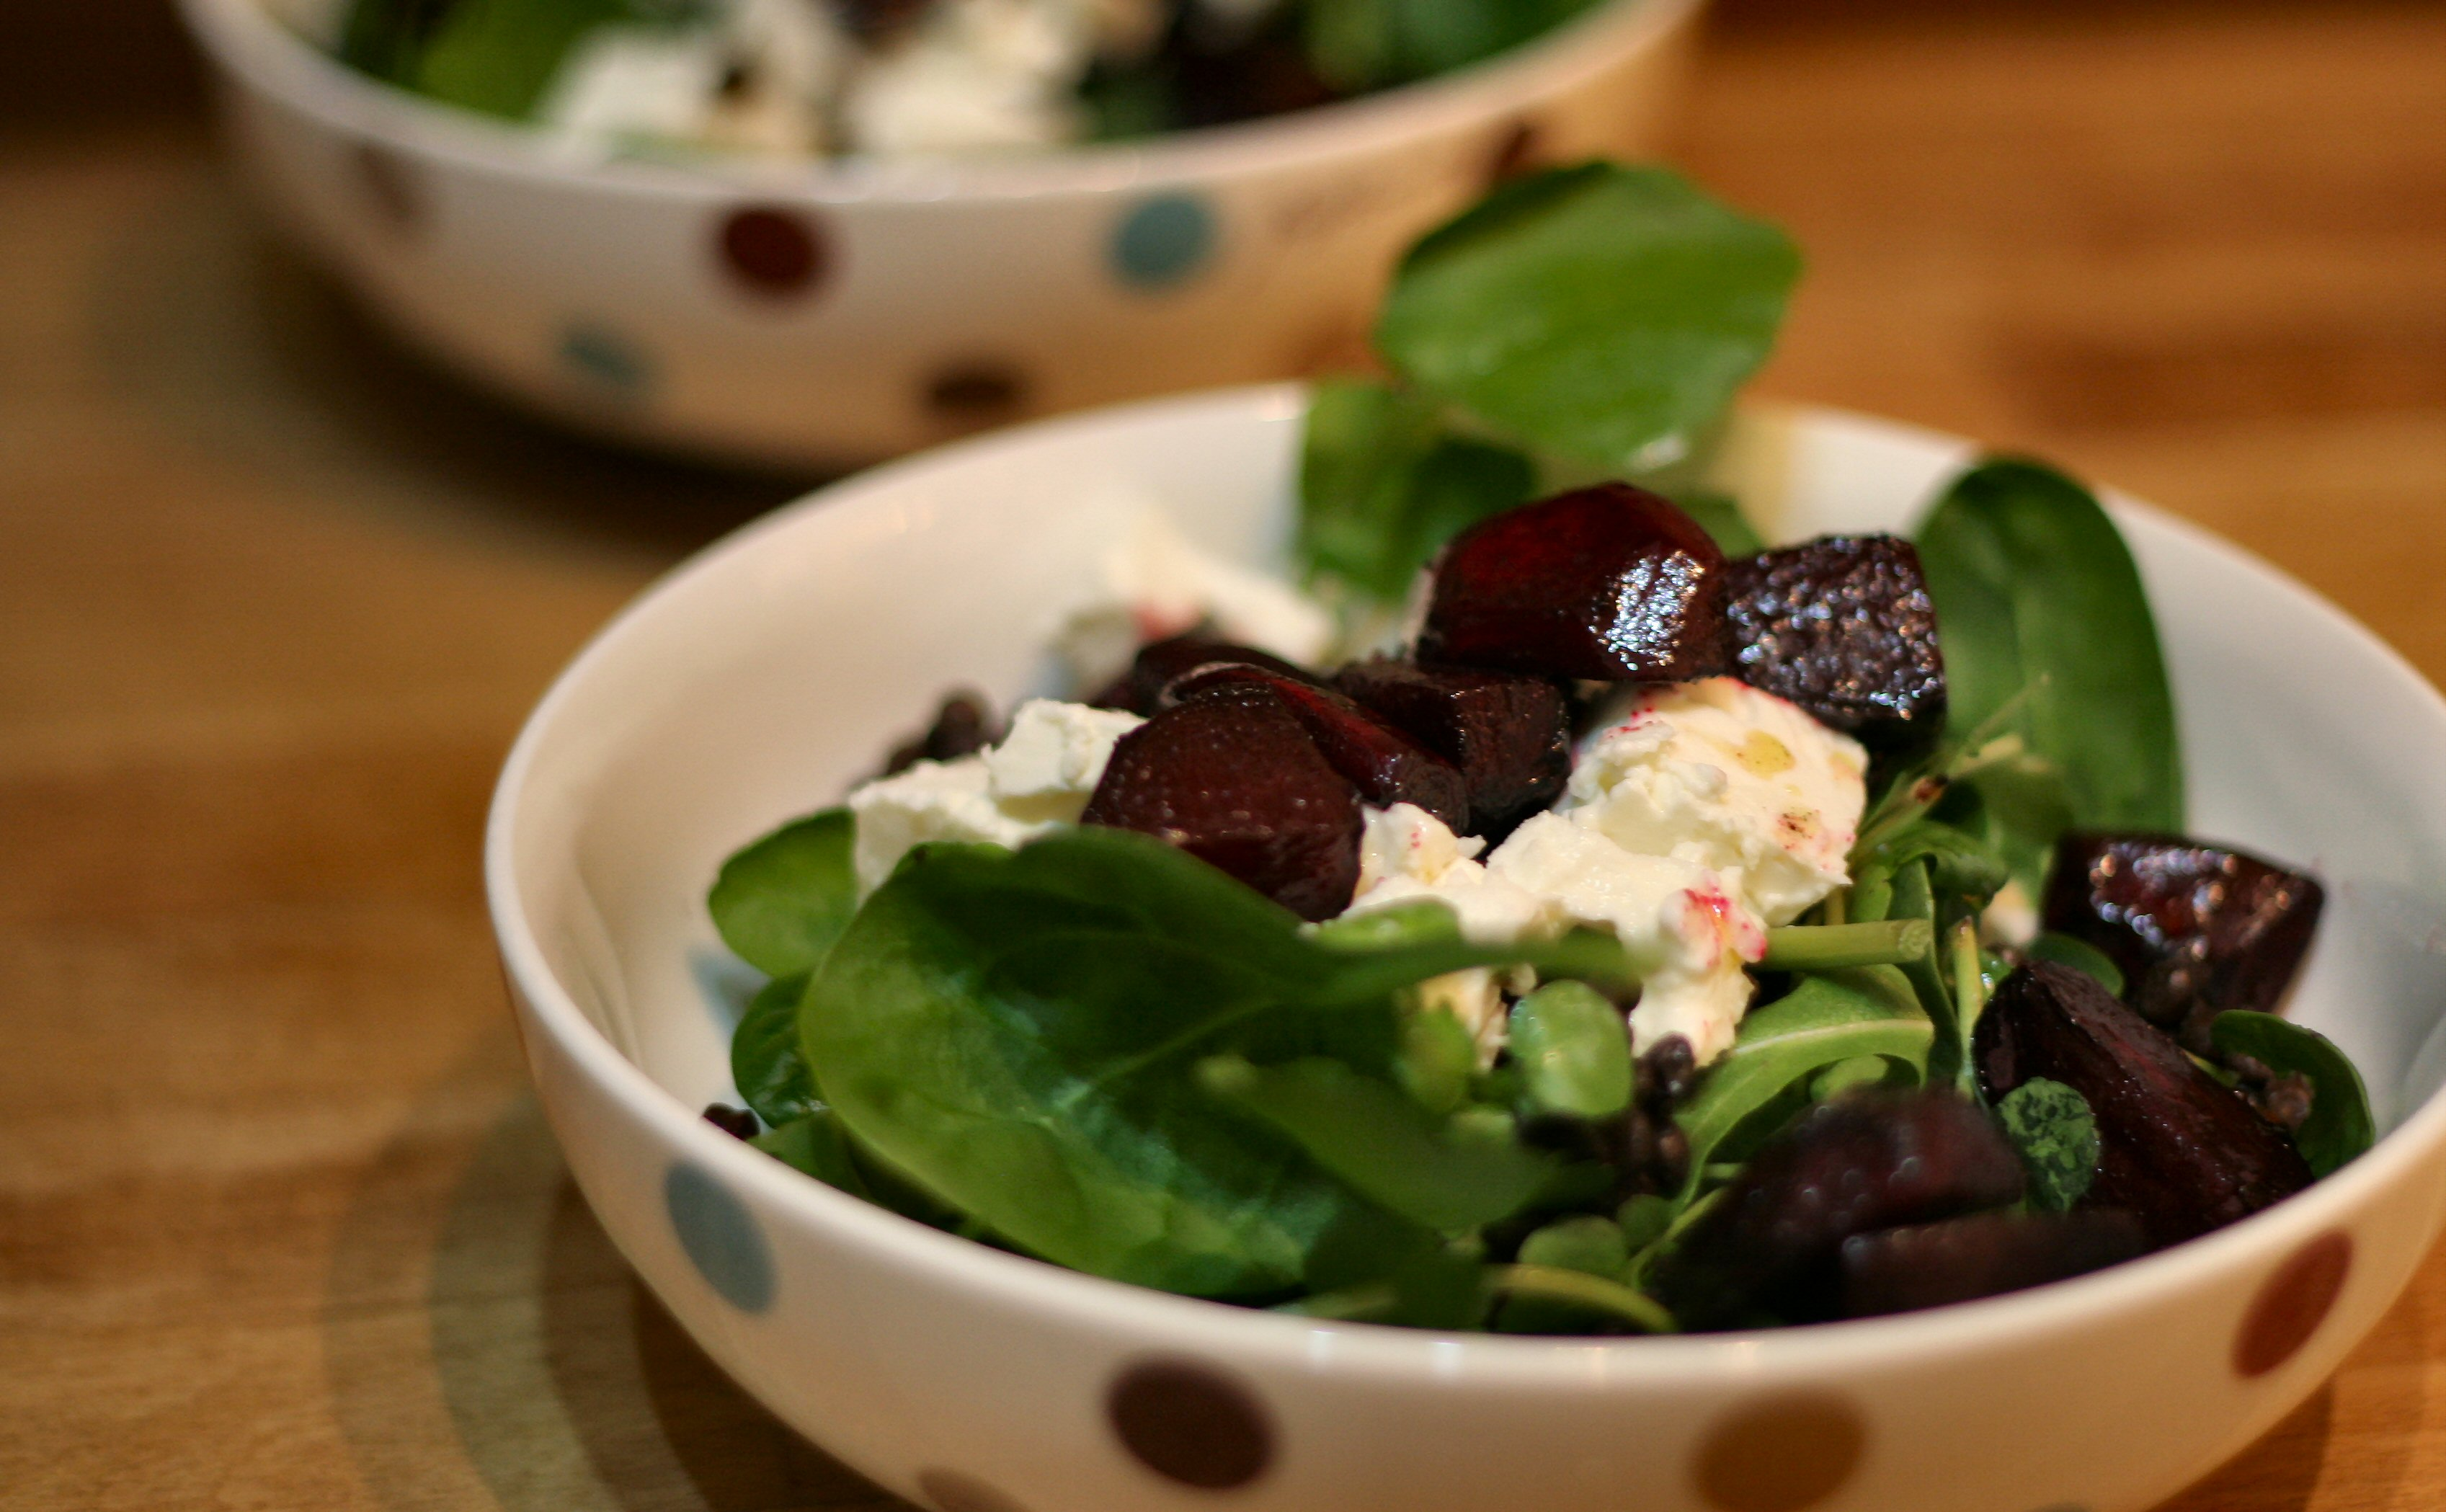 Beetroot, feta & lentil salad in bowls